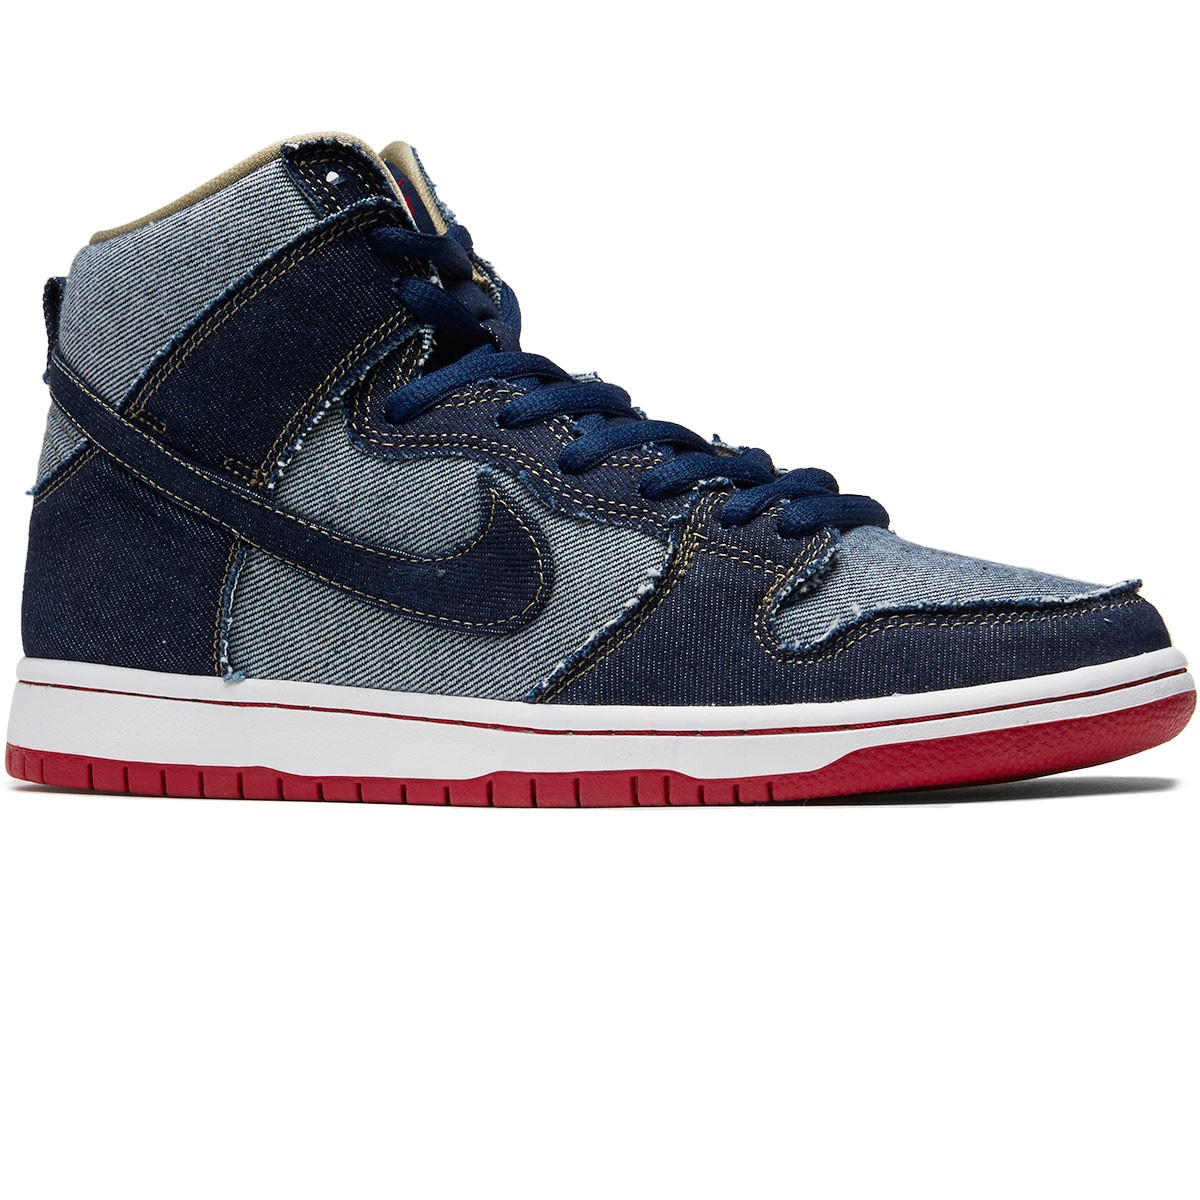 competitive price 30aec 1da23 Nike SB Denim Dunk High TRD Shoes - Midnight Navy White - 4.0